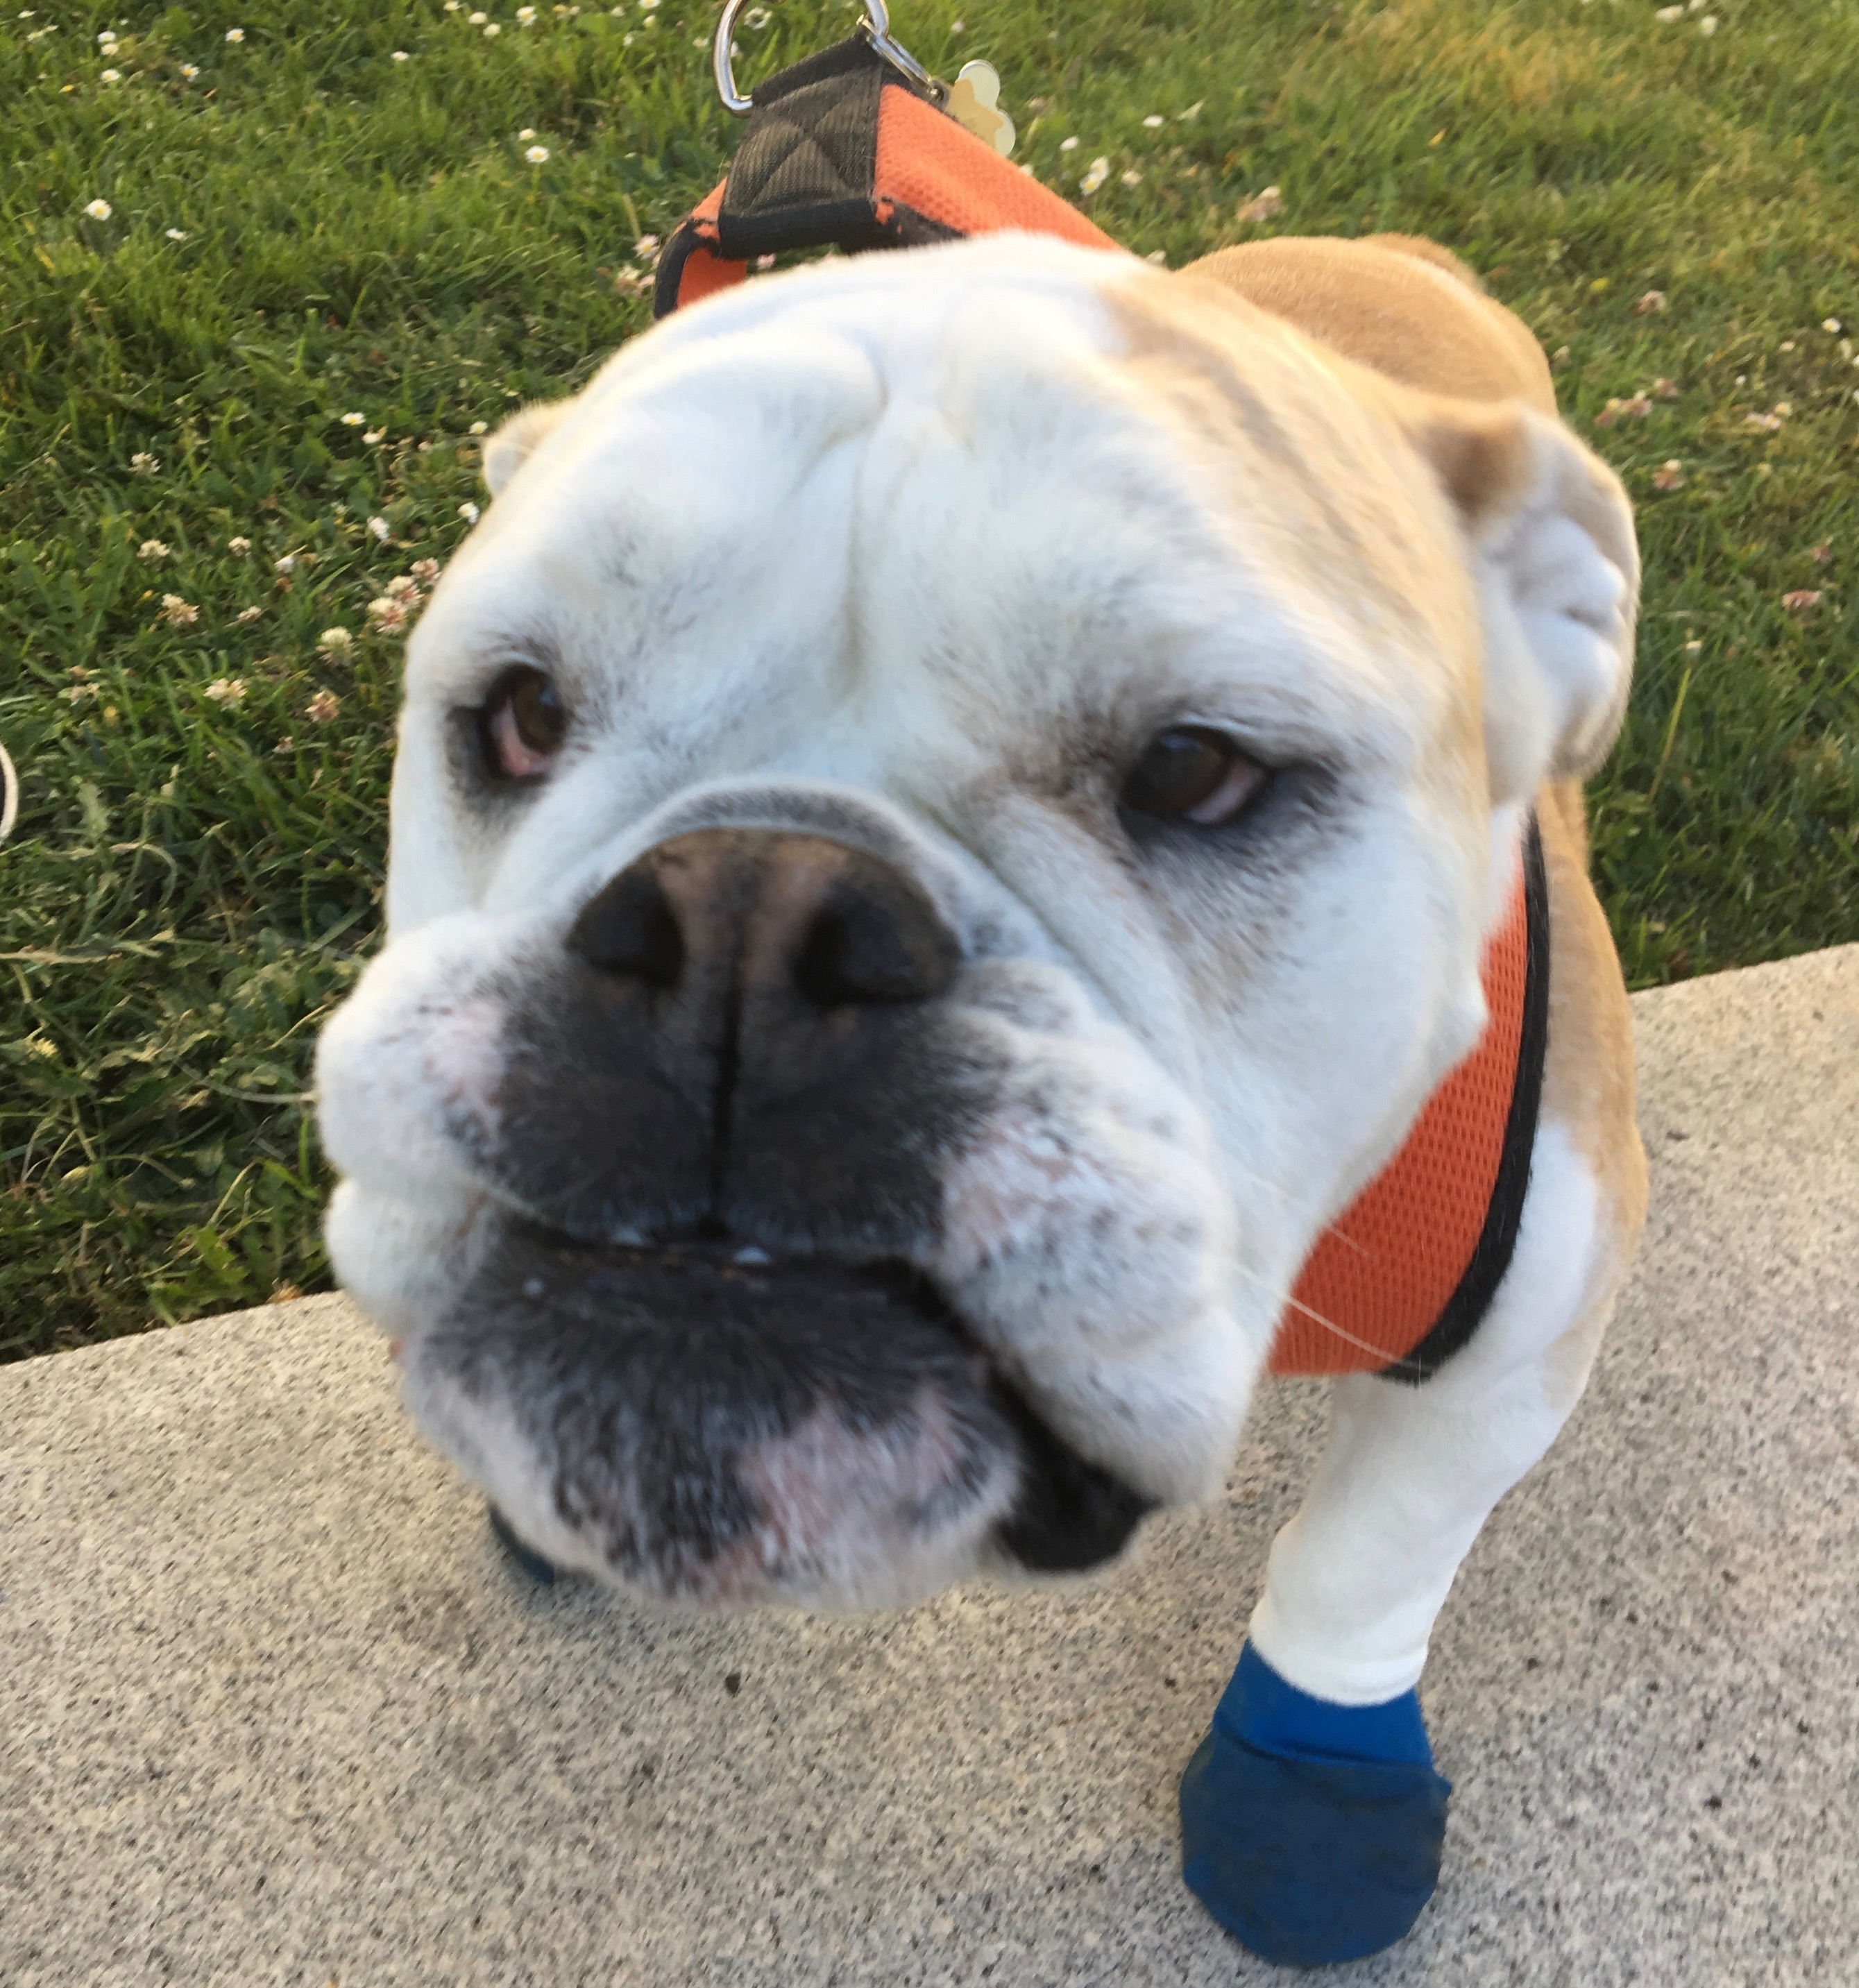 English Bulldog In Blue Boots Staring Into The Camera